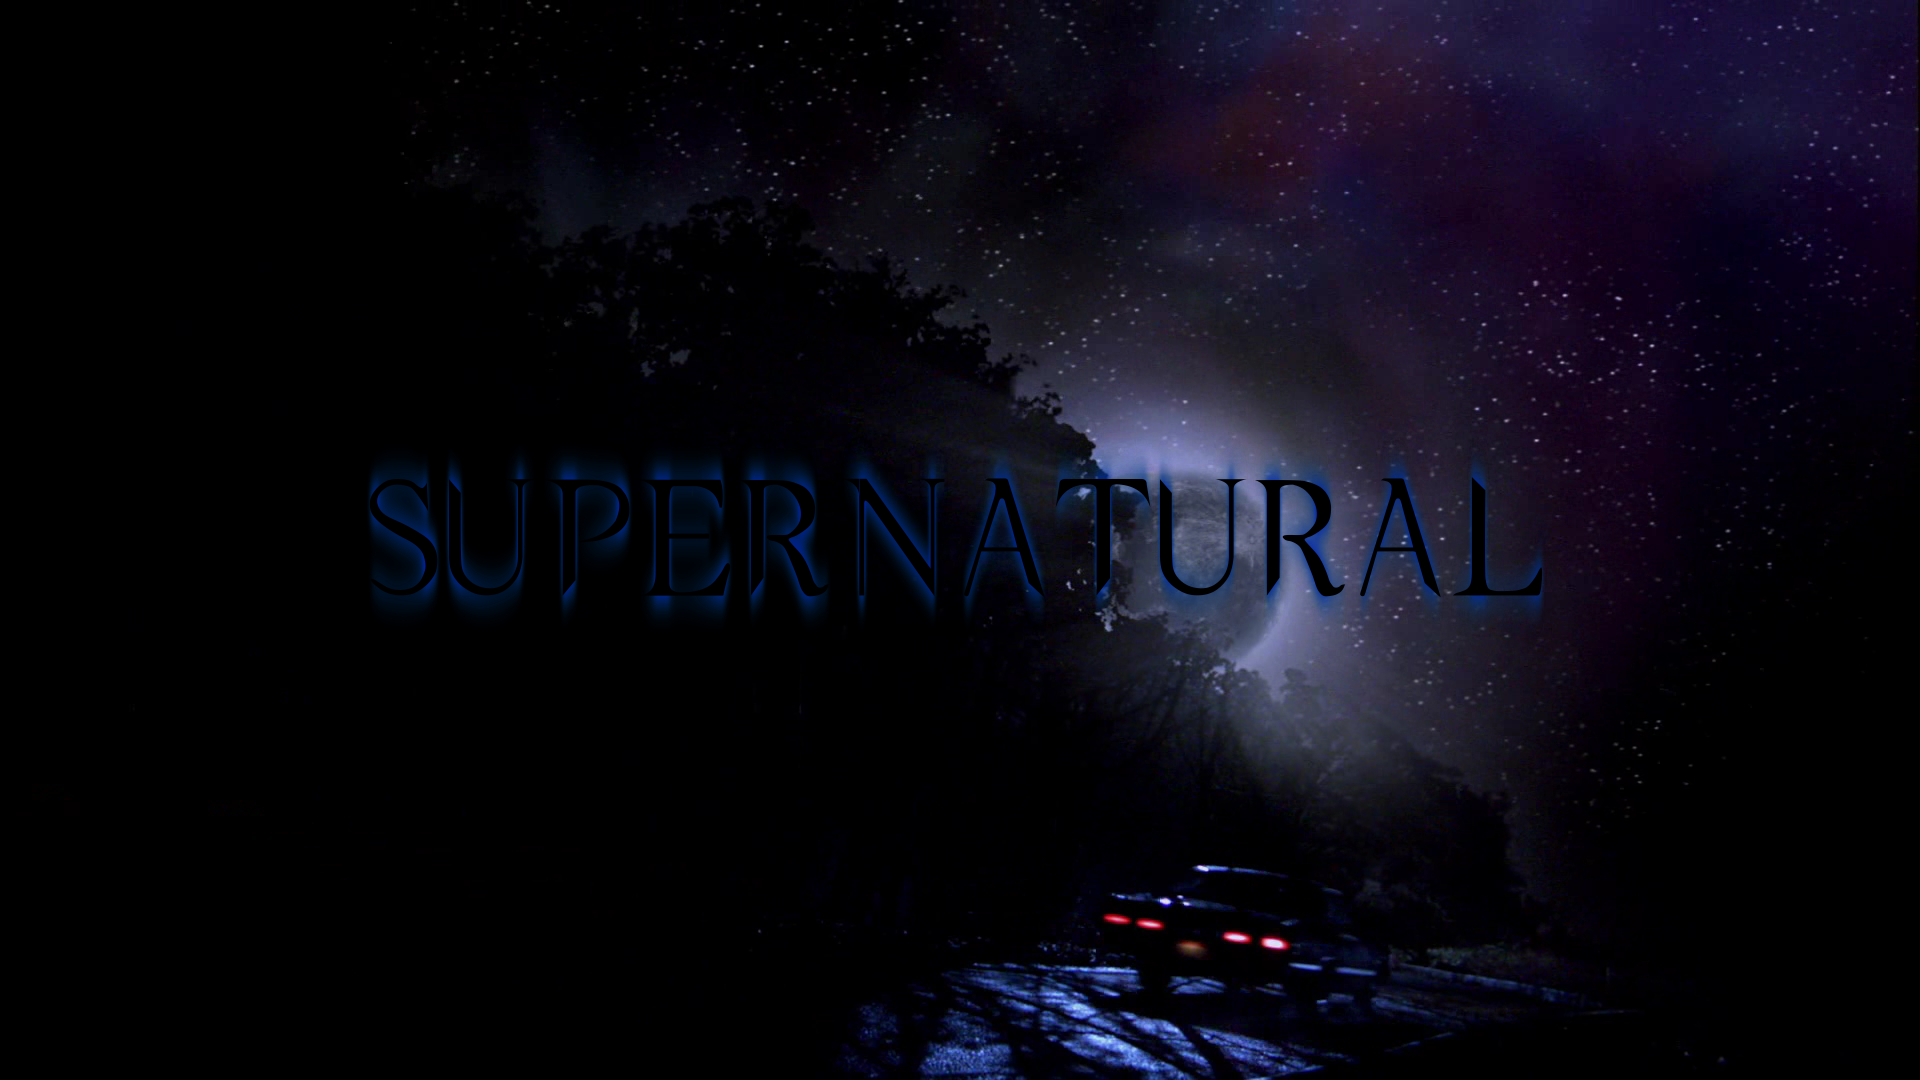 Supernatural Darkside Of The Moon Wallpaper Pack By Winchester7314